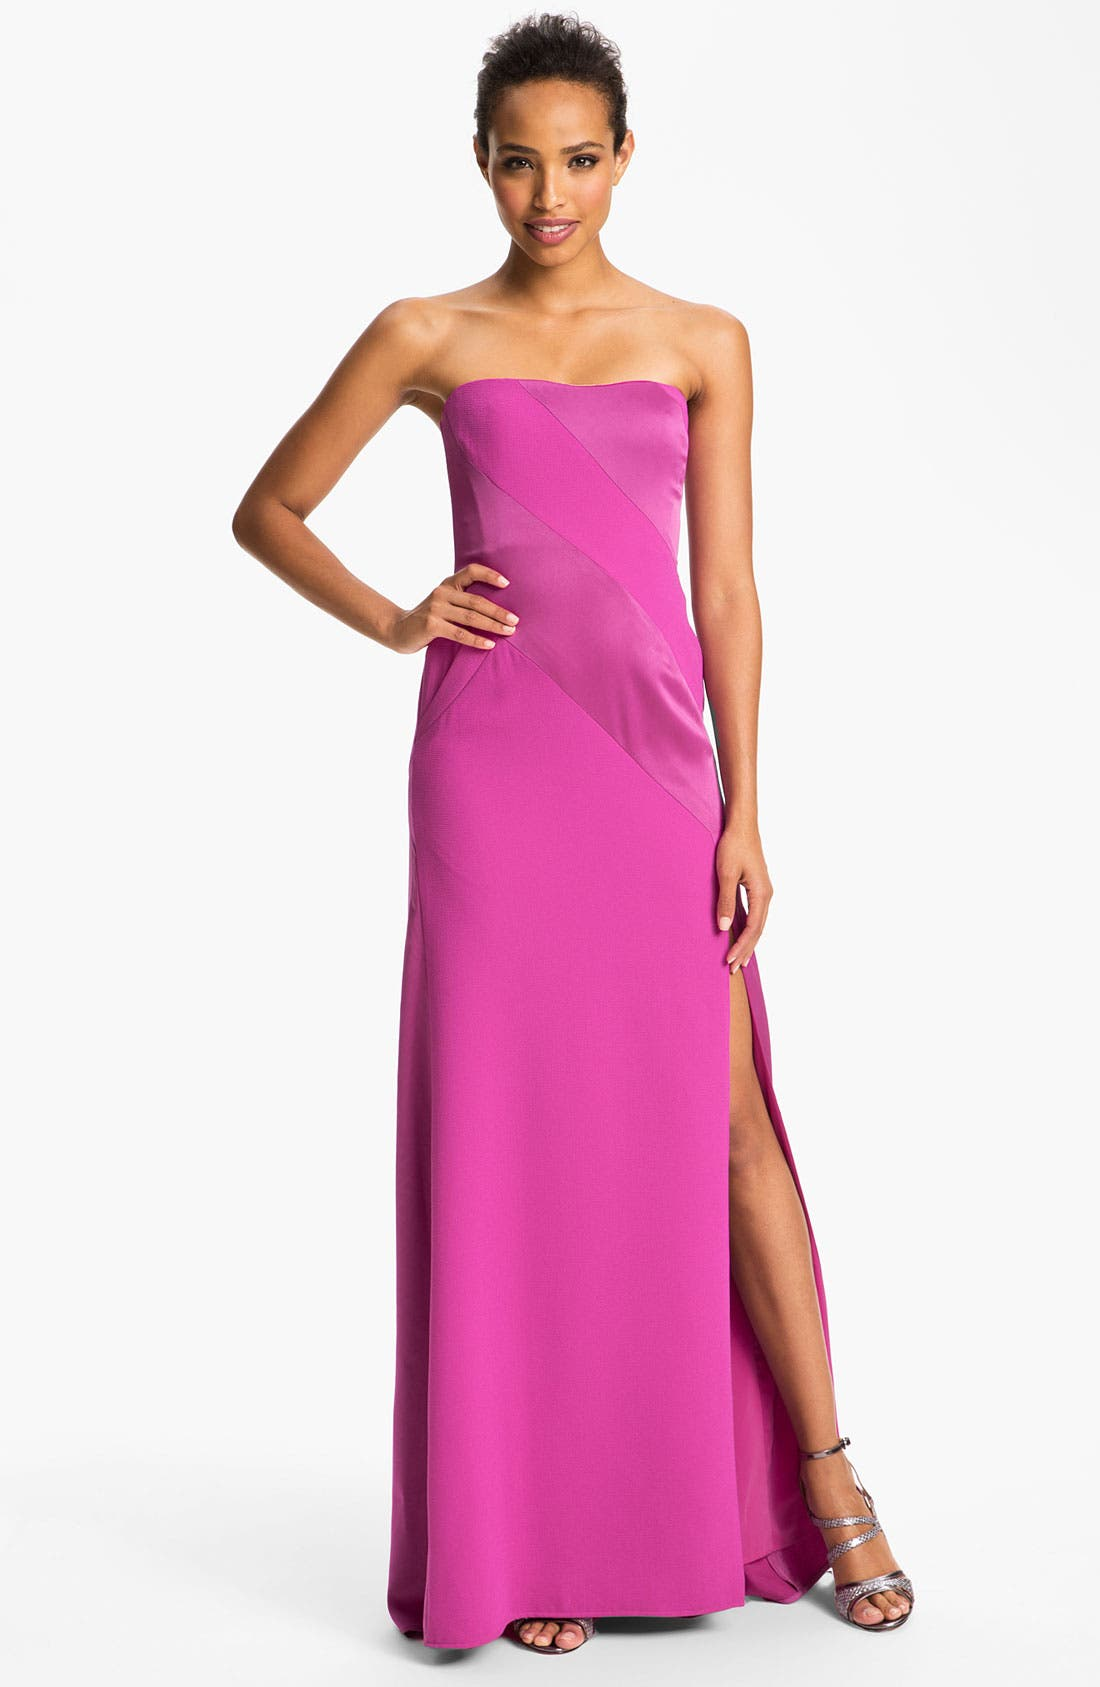 Alternate Image 1 Selected - BCBGMAXAZRIA Strapless Satin Inset Crepe Gown